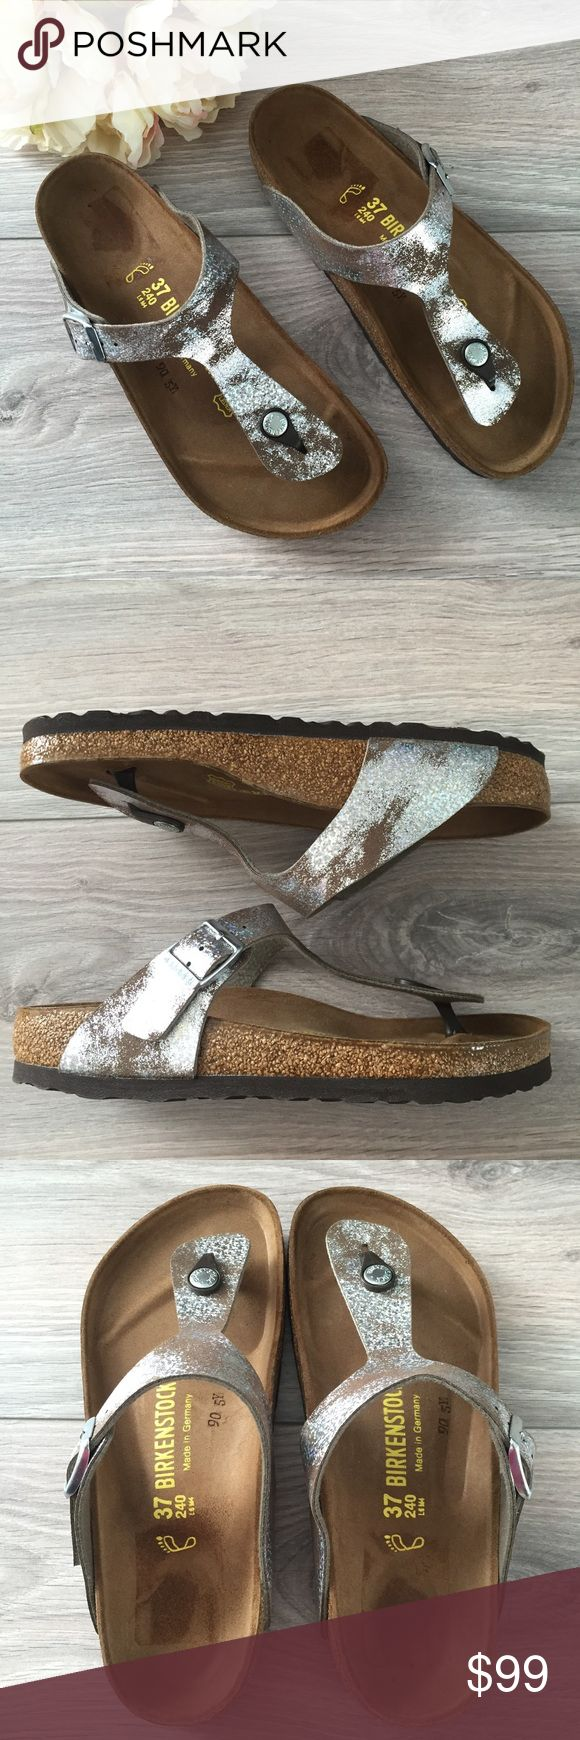 Birkenstock Gizeh in stardust stone Super comfortable yet fashionable Birkenstock sandals in Gizeh style and stardust stone color. Has adjustable straps and cork sole. Brand new and never worn, only flaw is minor discoloration on sole due to store sticker  tag. Birkenstock Shoes Sandals